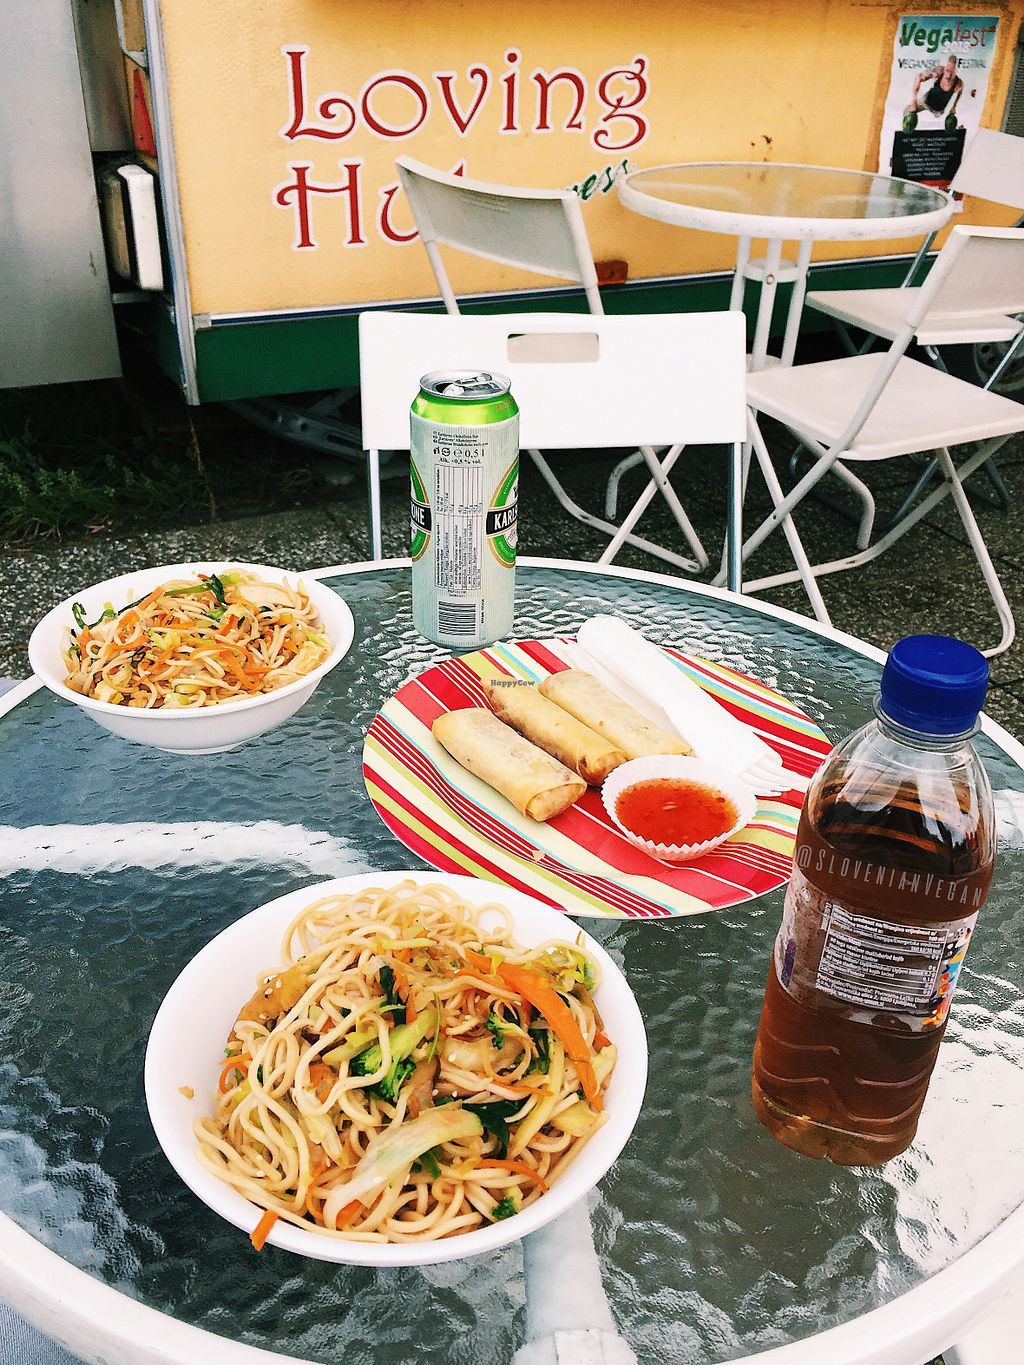 """Photo of Loving Hut Express - Food Cart  by <a href=""""/members/profile/slovenianvegan"""">slovenianvegan</a> <br/>Chow mein and spring rolls <br/> May 16, 2018  - <a href='/contact/abuse/image/25548/400512'>Report</a>"""